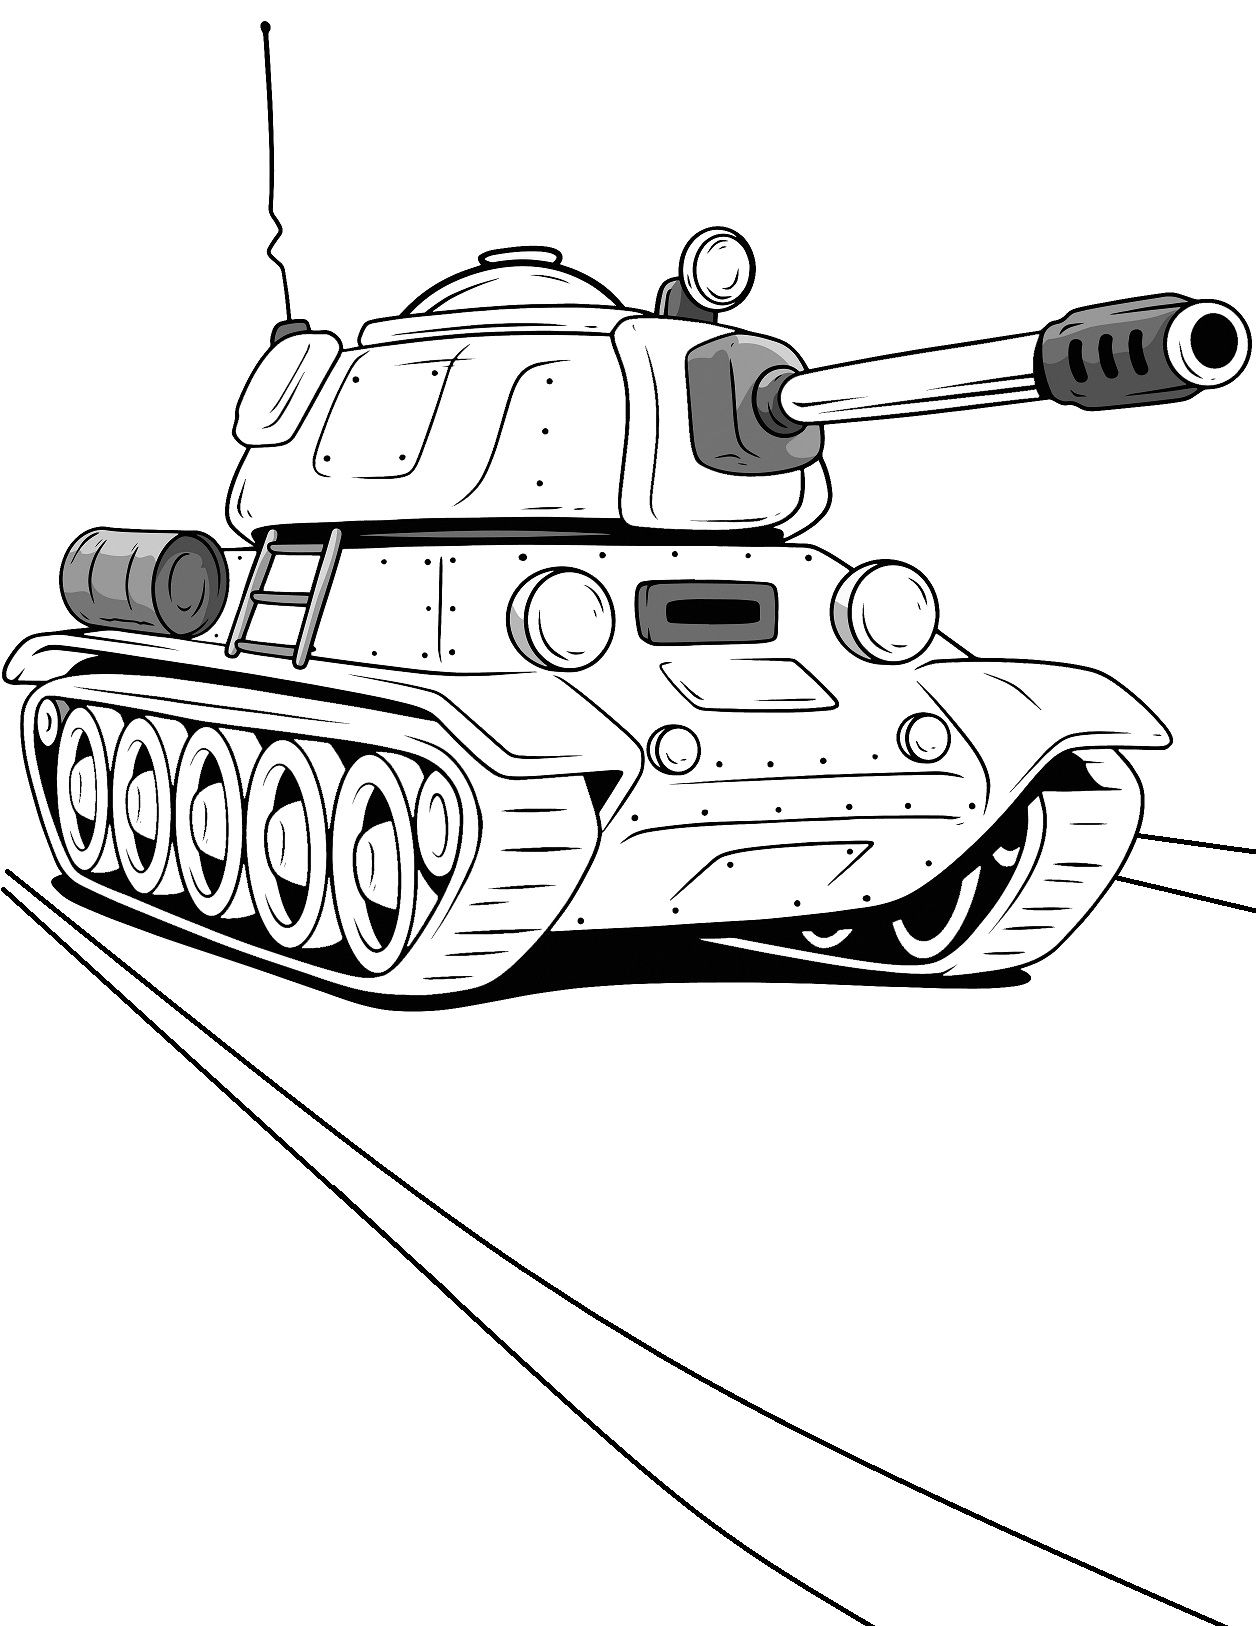 Military Coloring Book For Kids Coloring Books Kids Coloring Books Coloring Pages